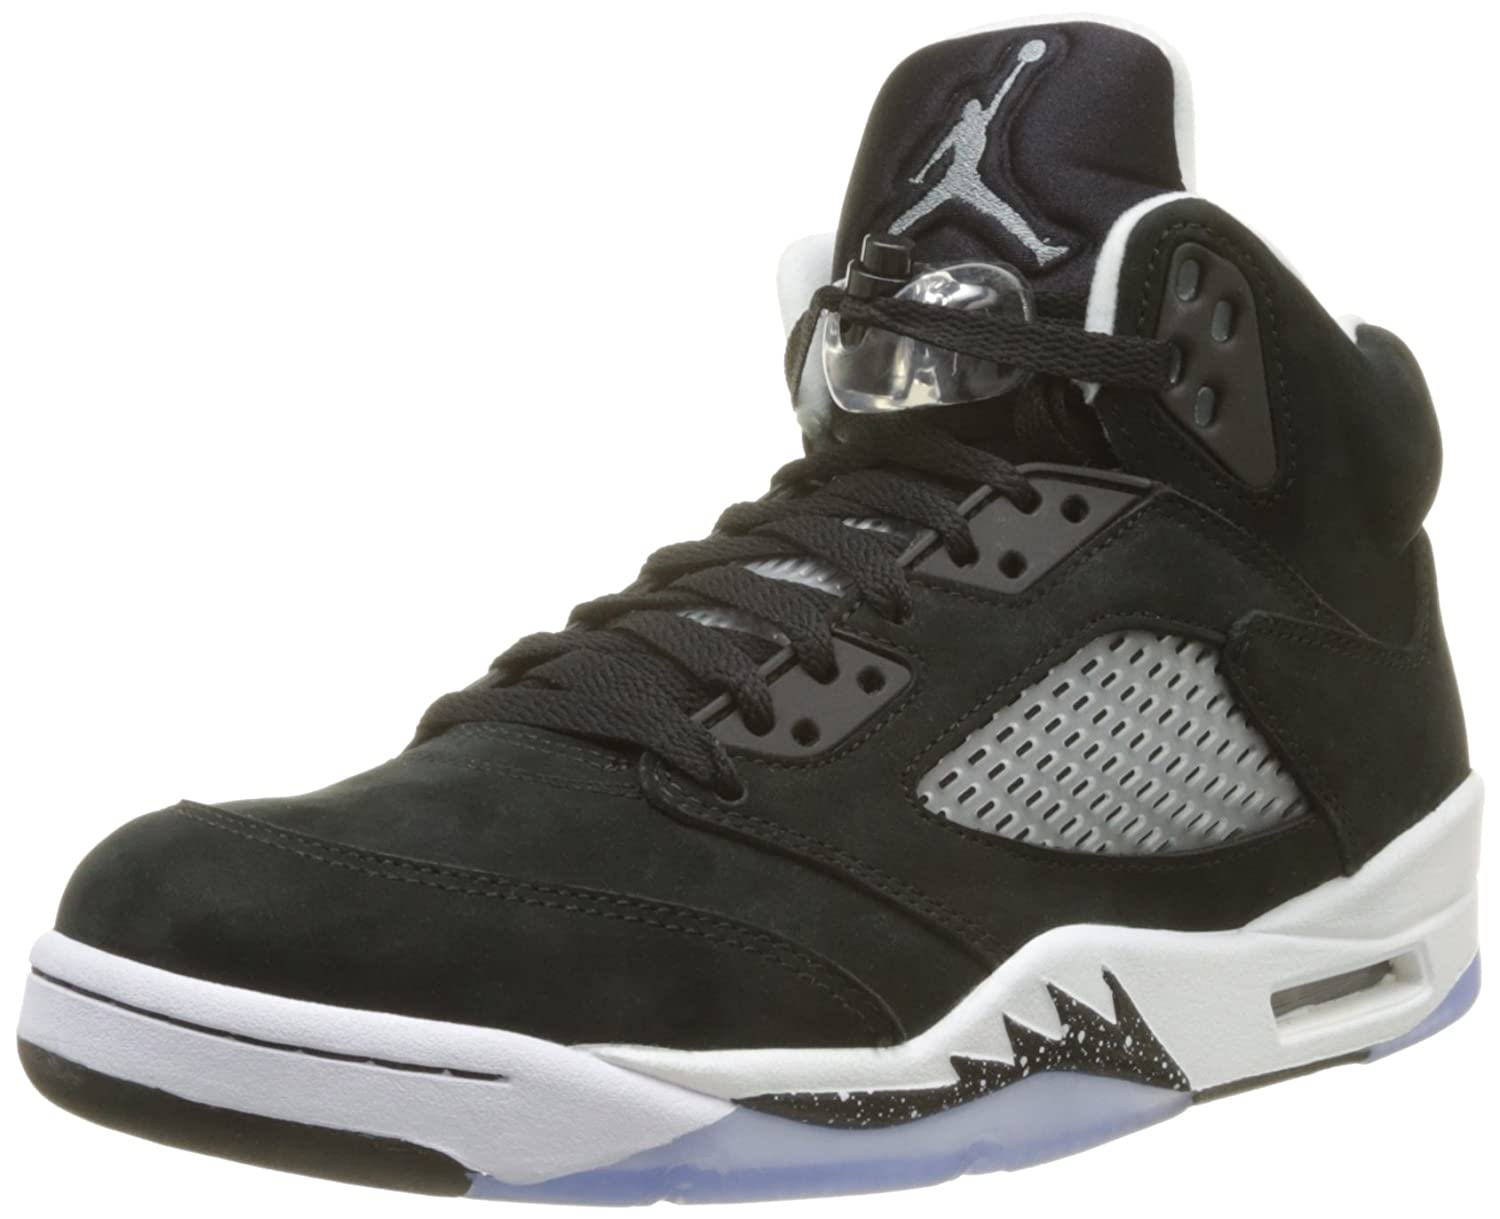 3f8855ce3f3 Amazon.com | NIKE Mens Air Jordan 5 Retro Oreo Suede Basketball-Shoes |  Basketball